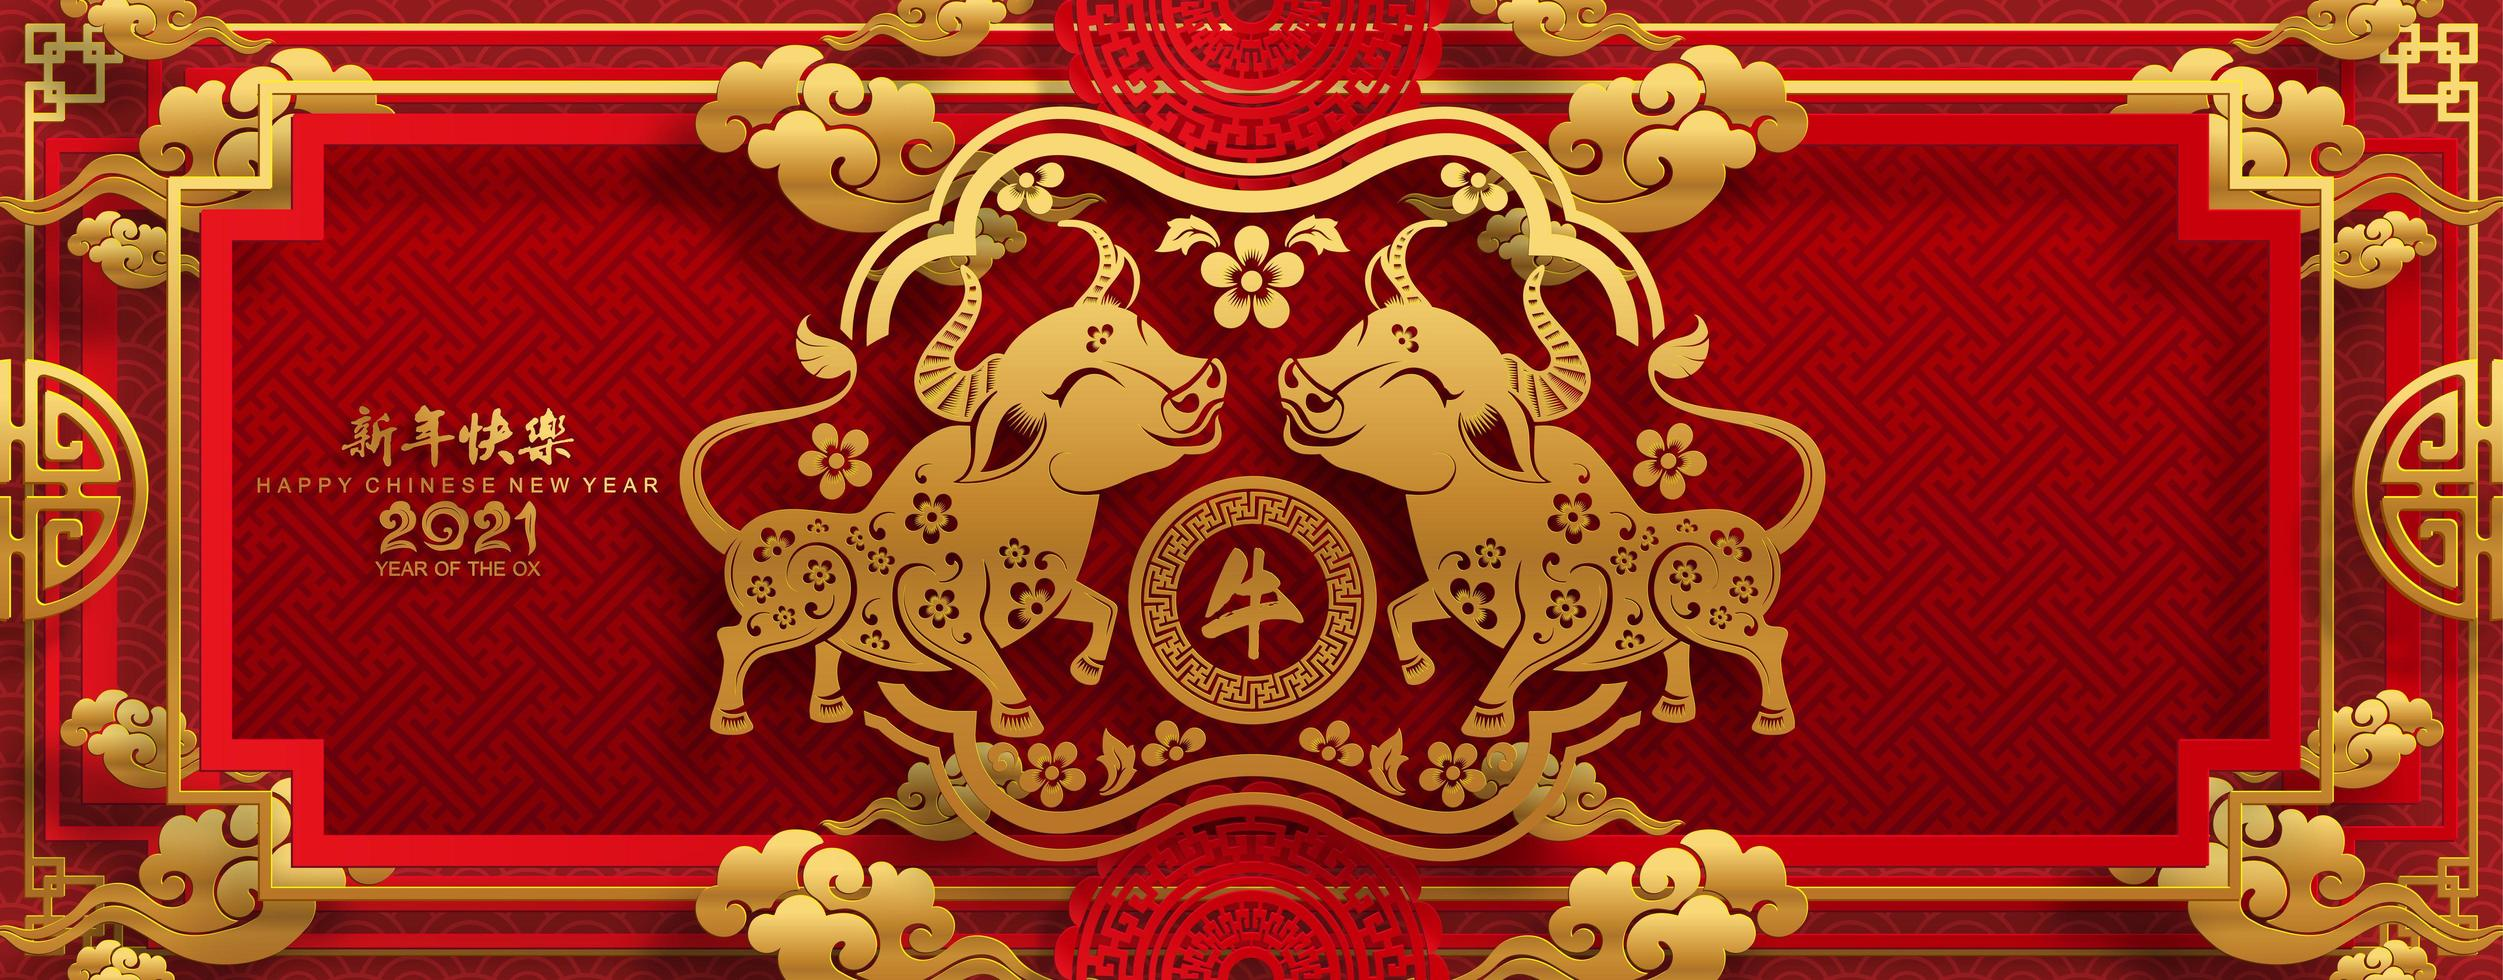 Chinese new year 2021 banner with golden oxen vector